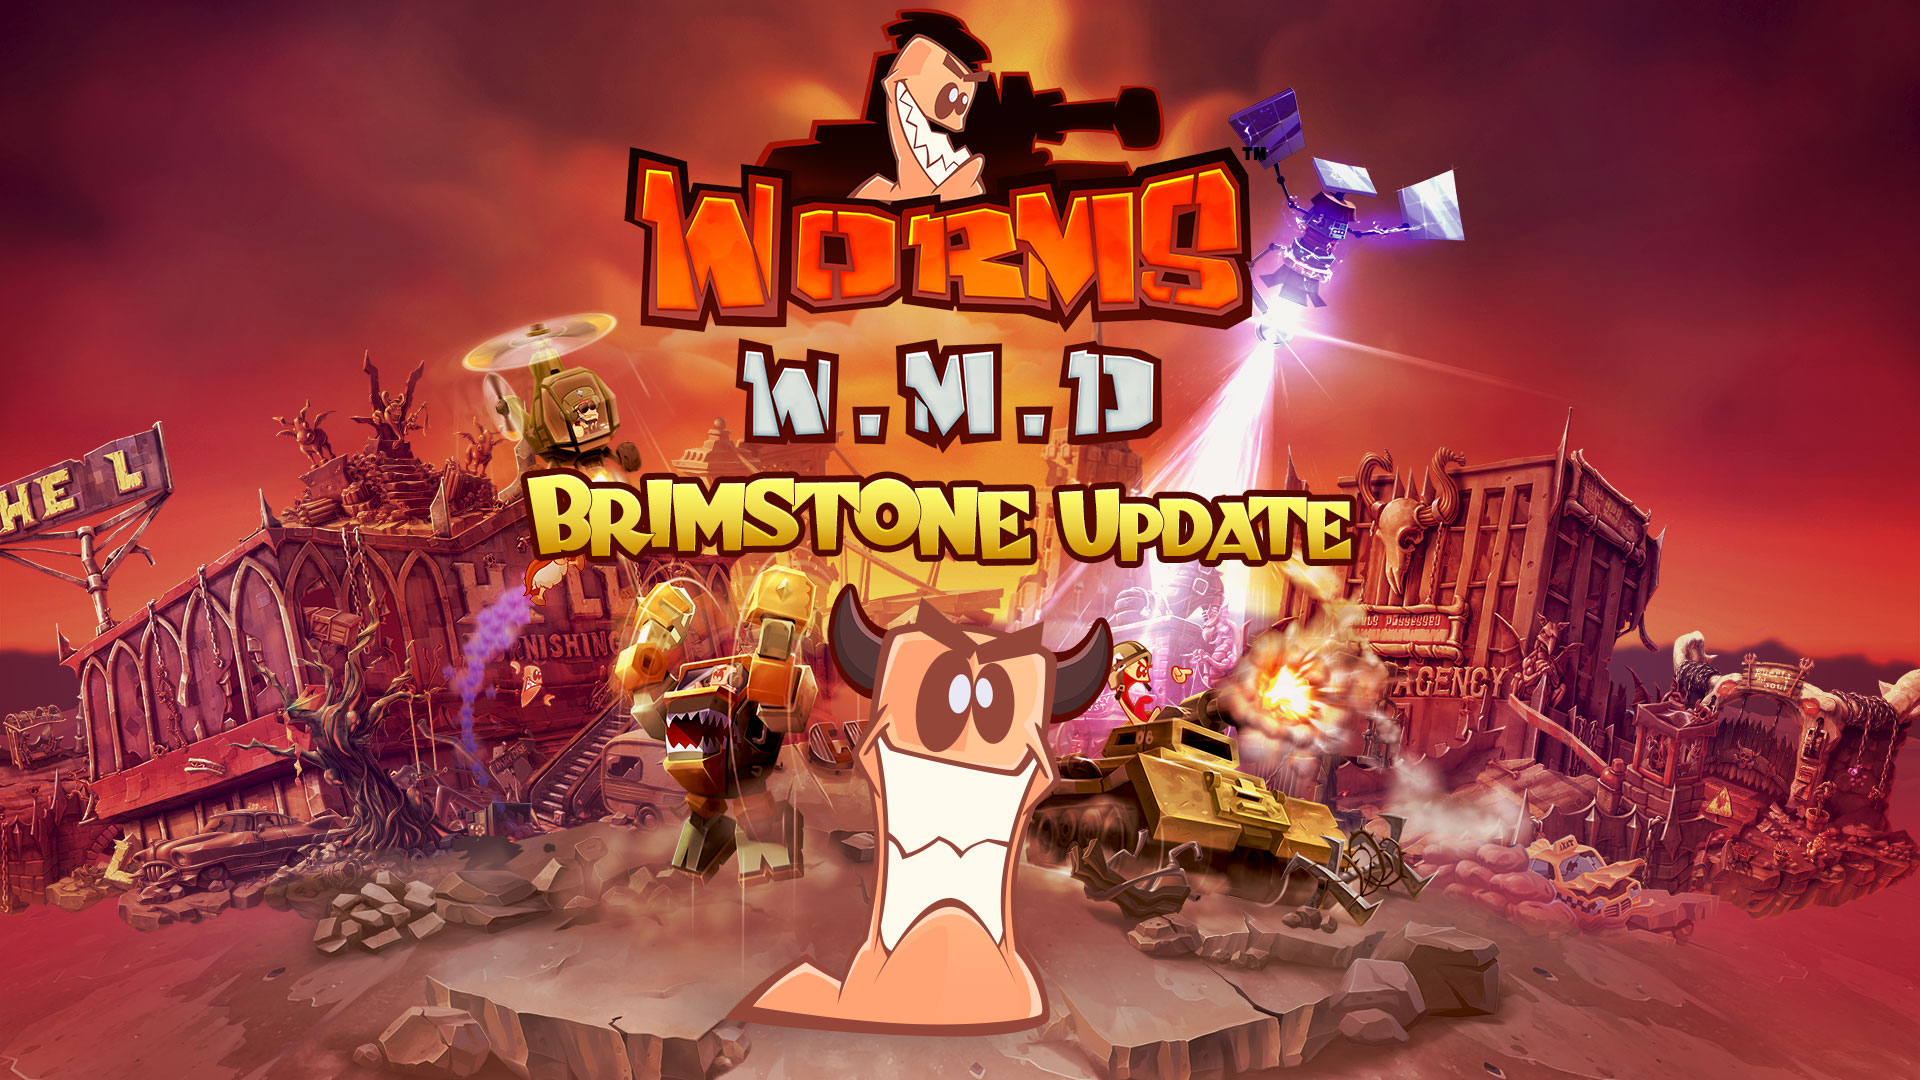 Worms W.M.D receives FREE Brimstone update!